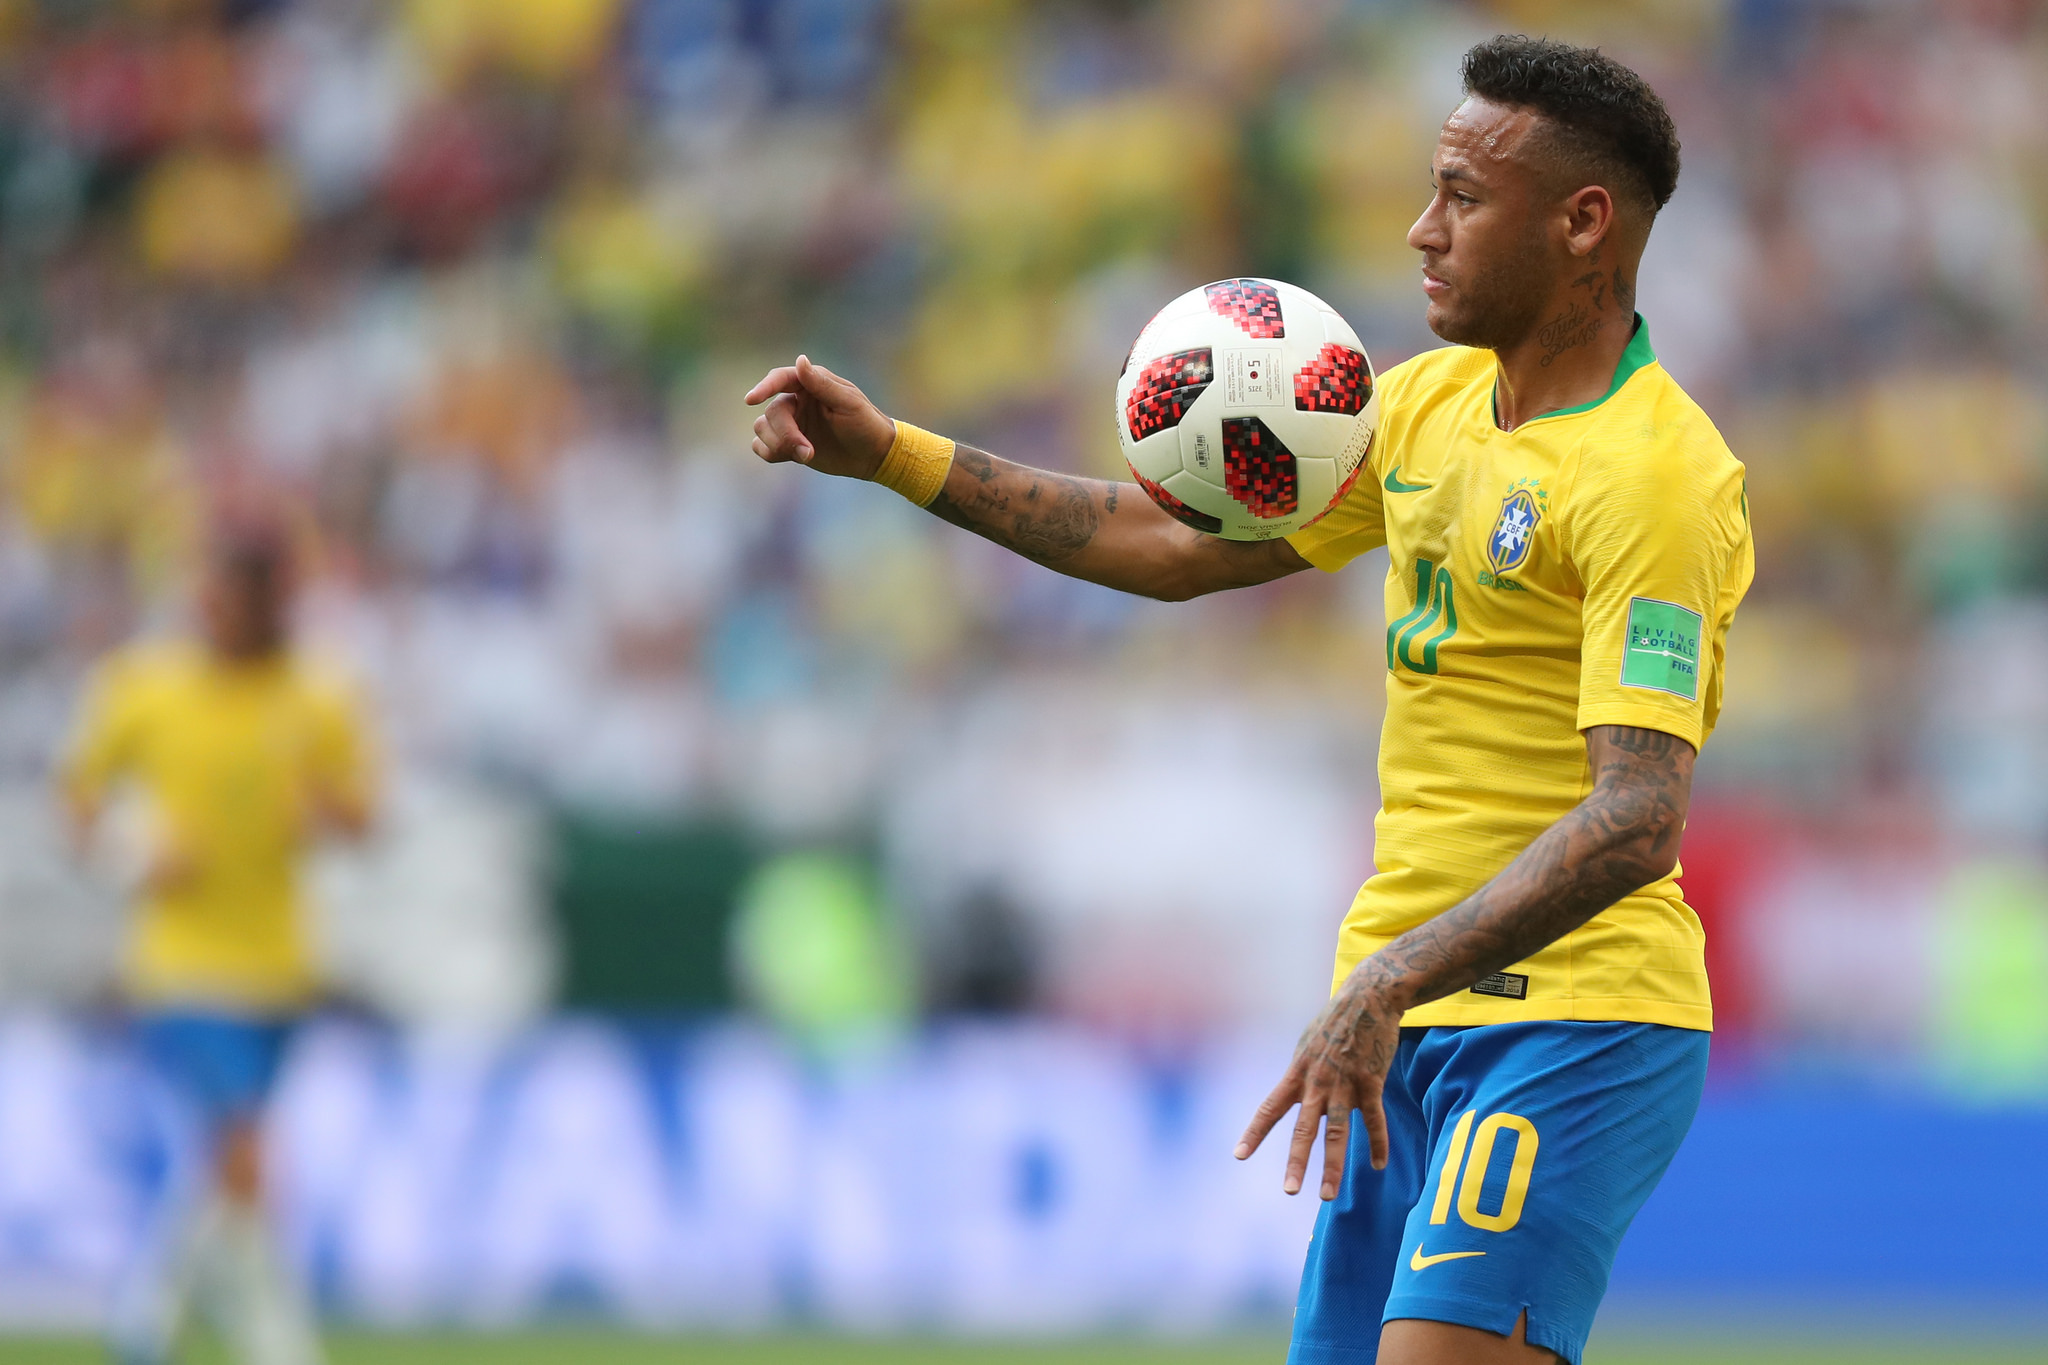 World Cup: recycled plastic is part of the Brazilian Team uniform